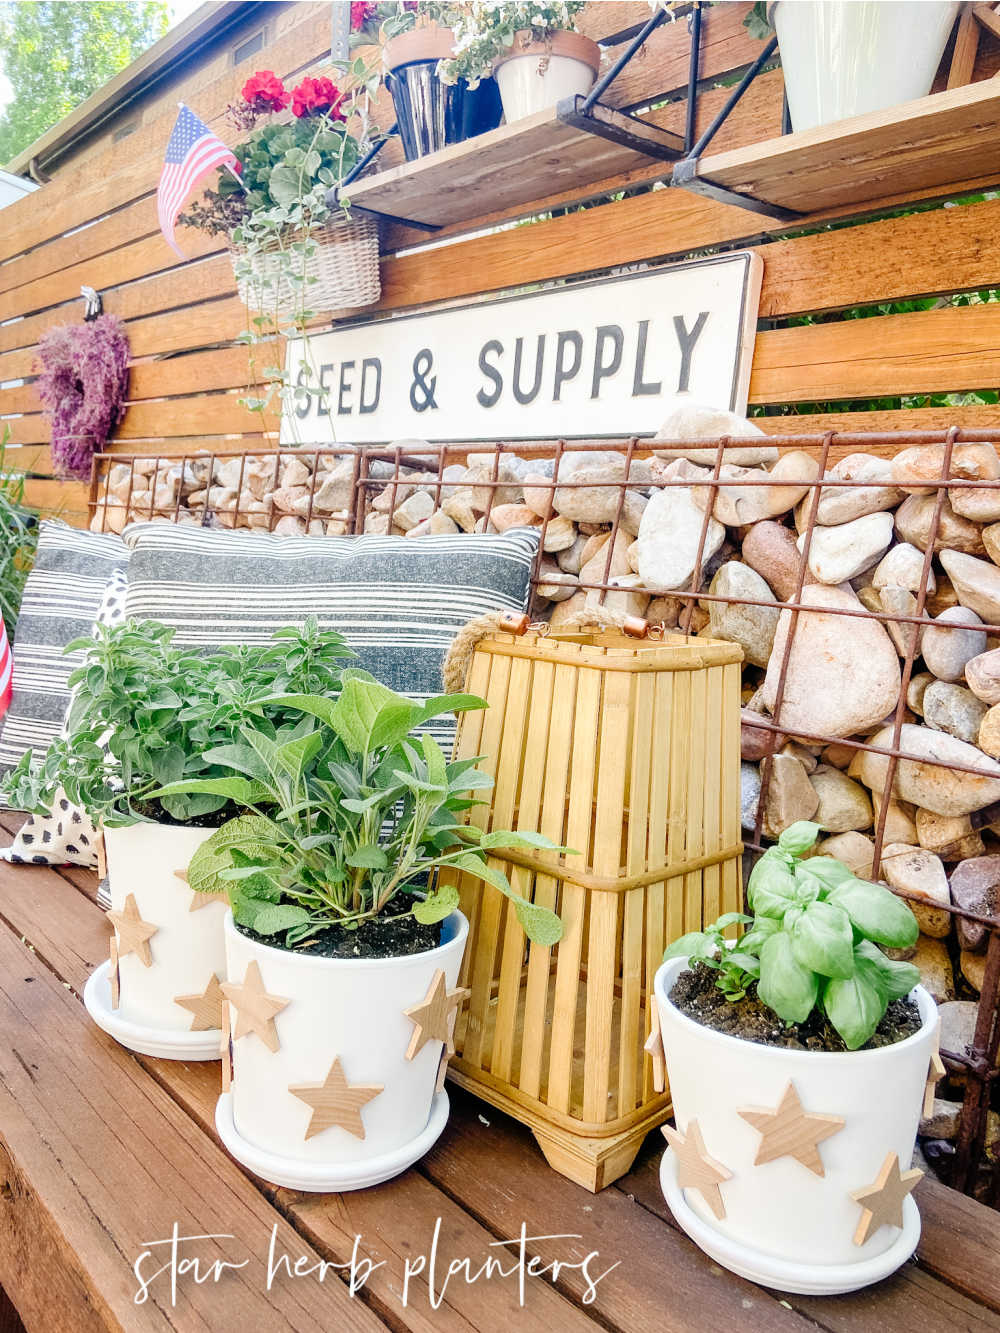 Terra Cotta Star Herb Planters. Create pretty farmhouse planters with natural wooden stars for your home or yard!